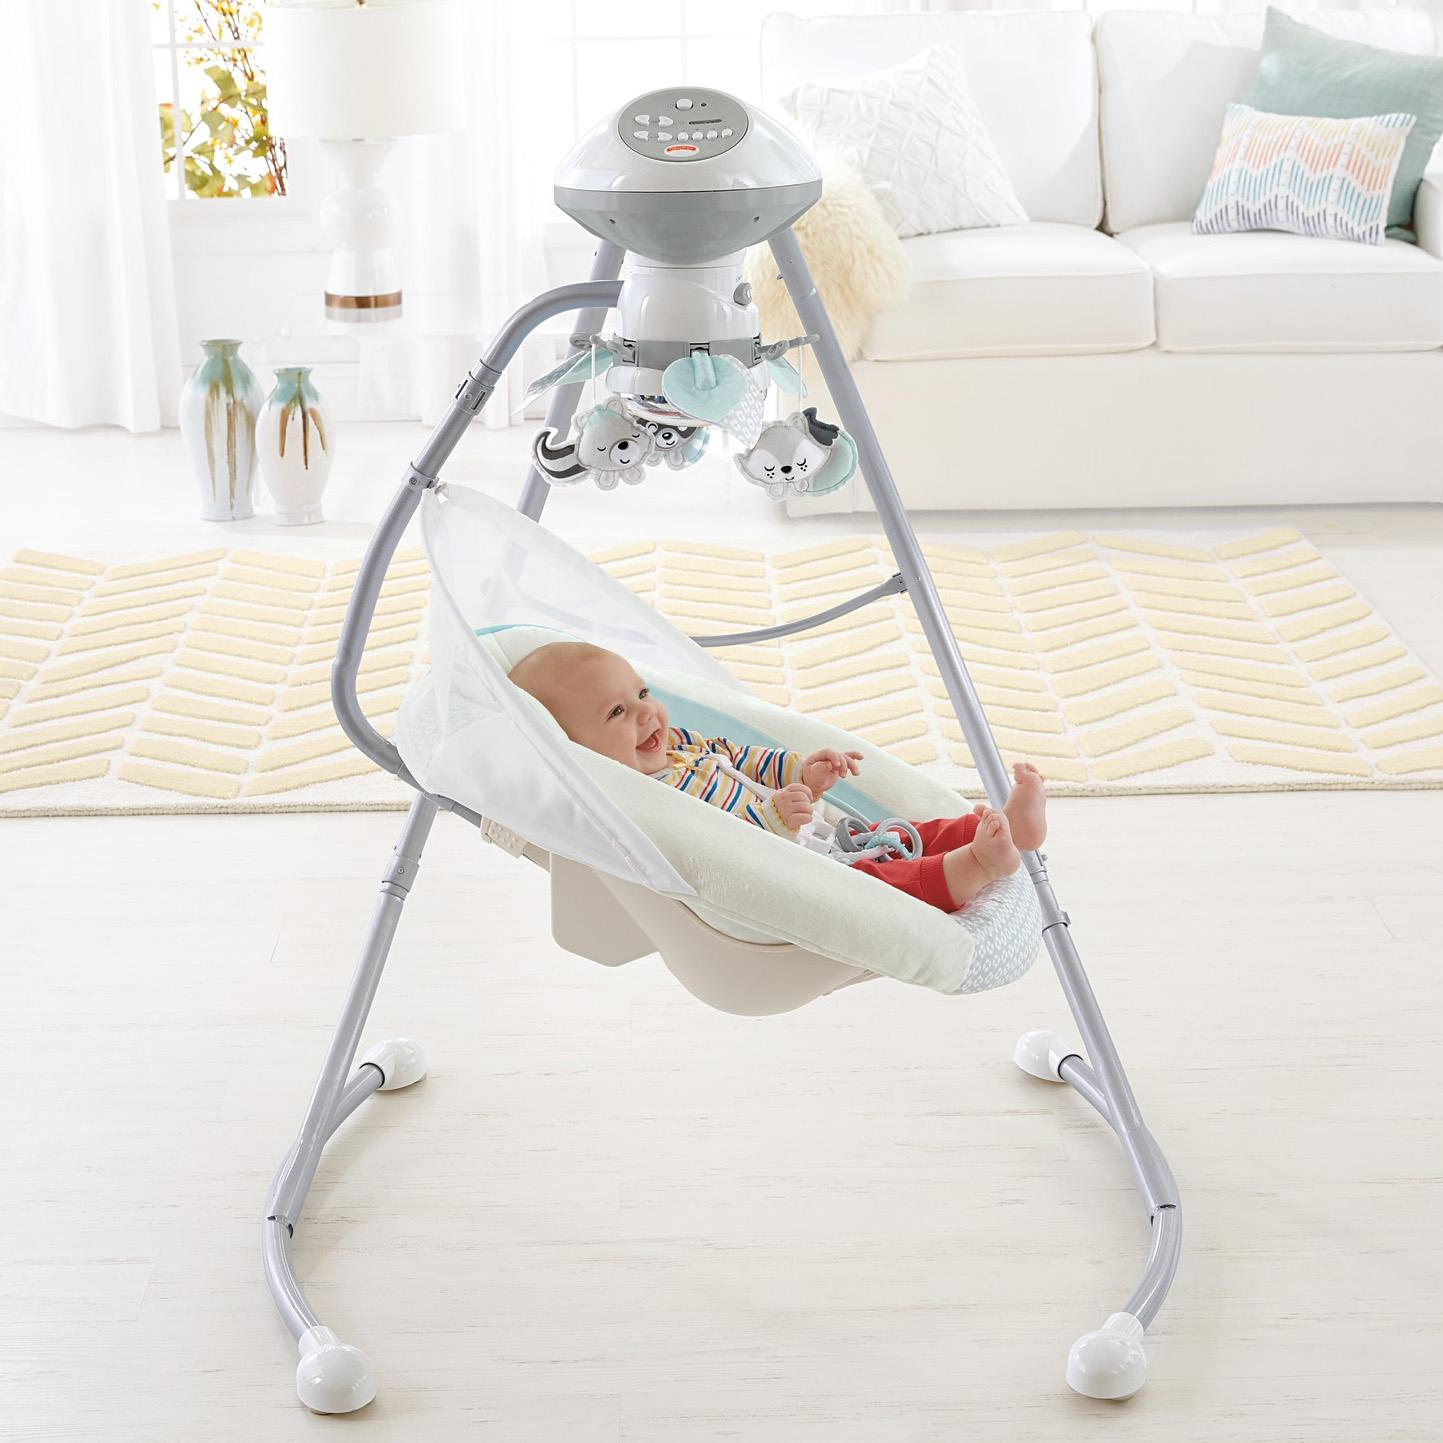 Amazon.com : Fisher-Price Moonlight Meadow Cradle 'n Swing, White : Baby